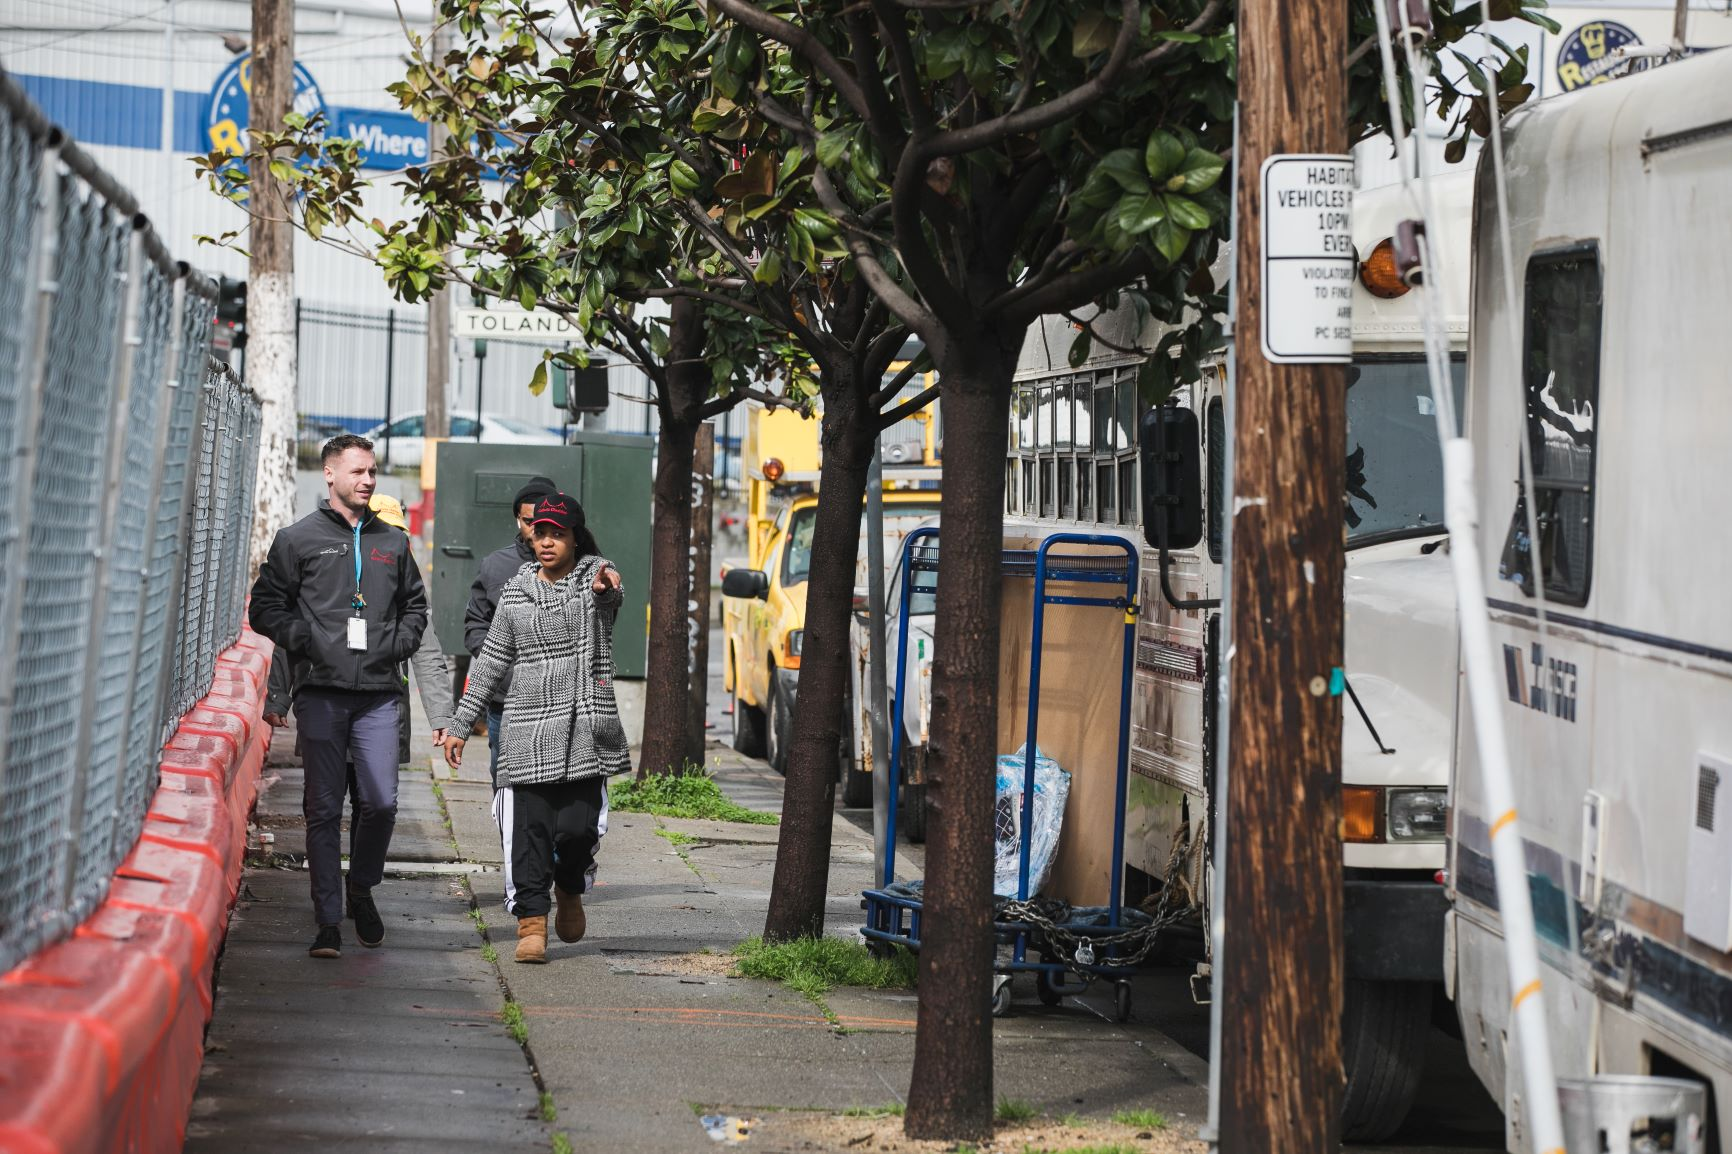 With a Rising SF Homeless Population, We Must Join Together to Address Systemic Causes